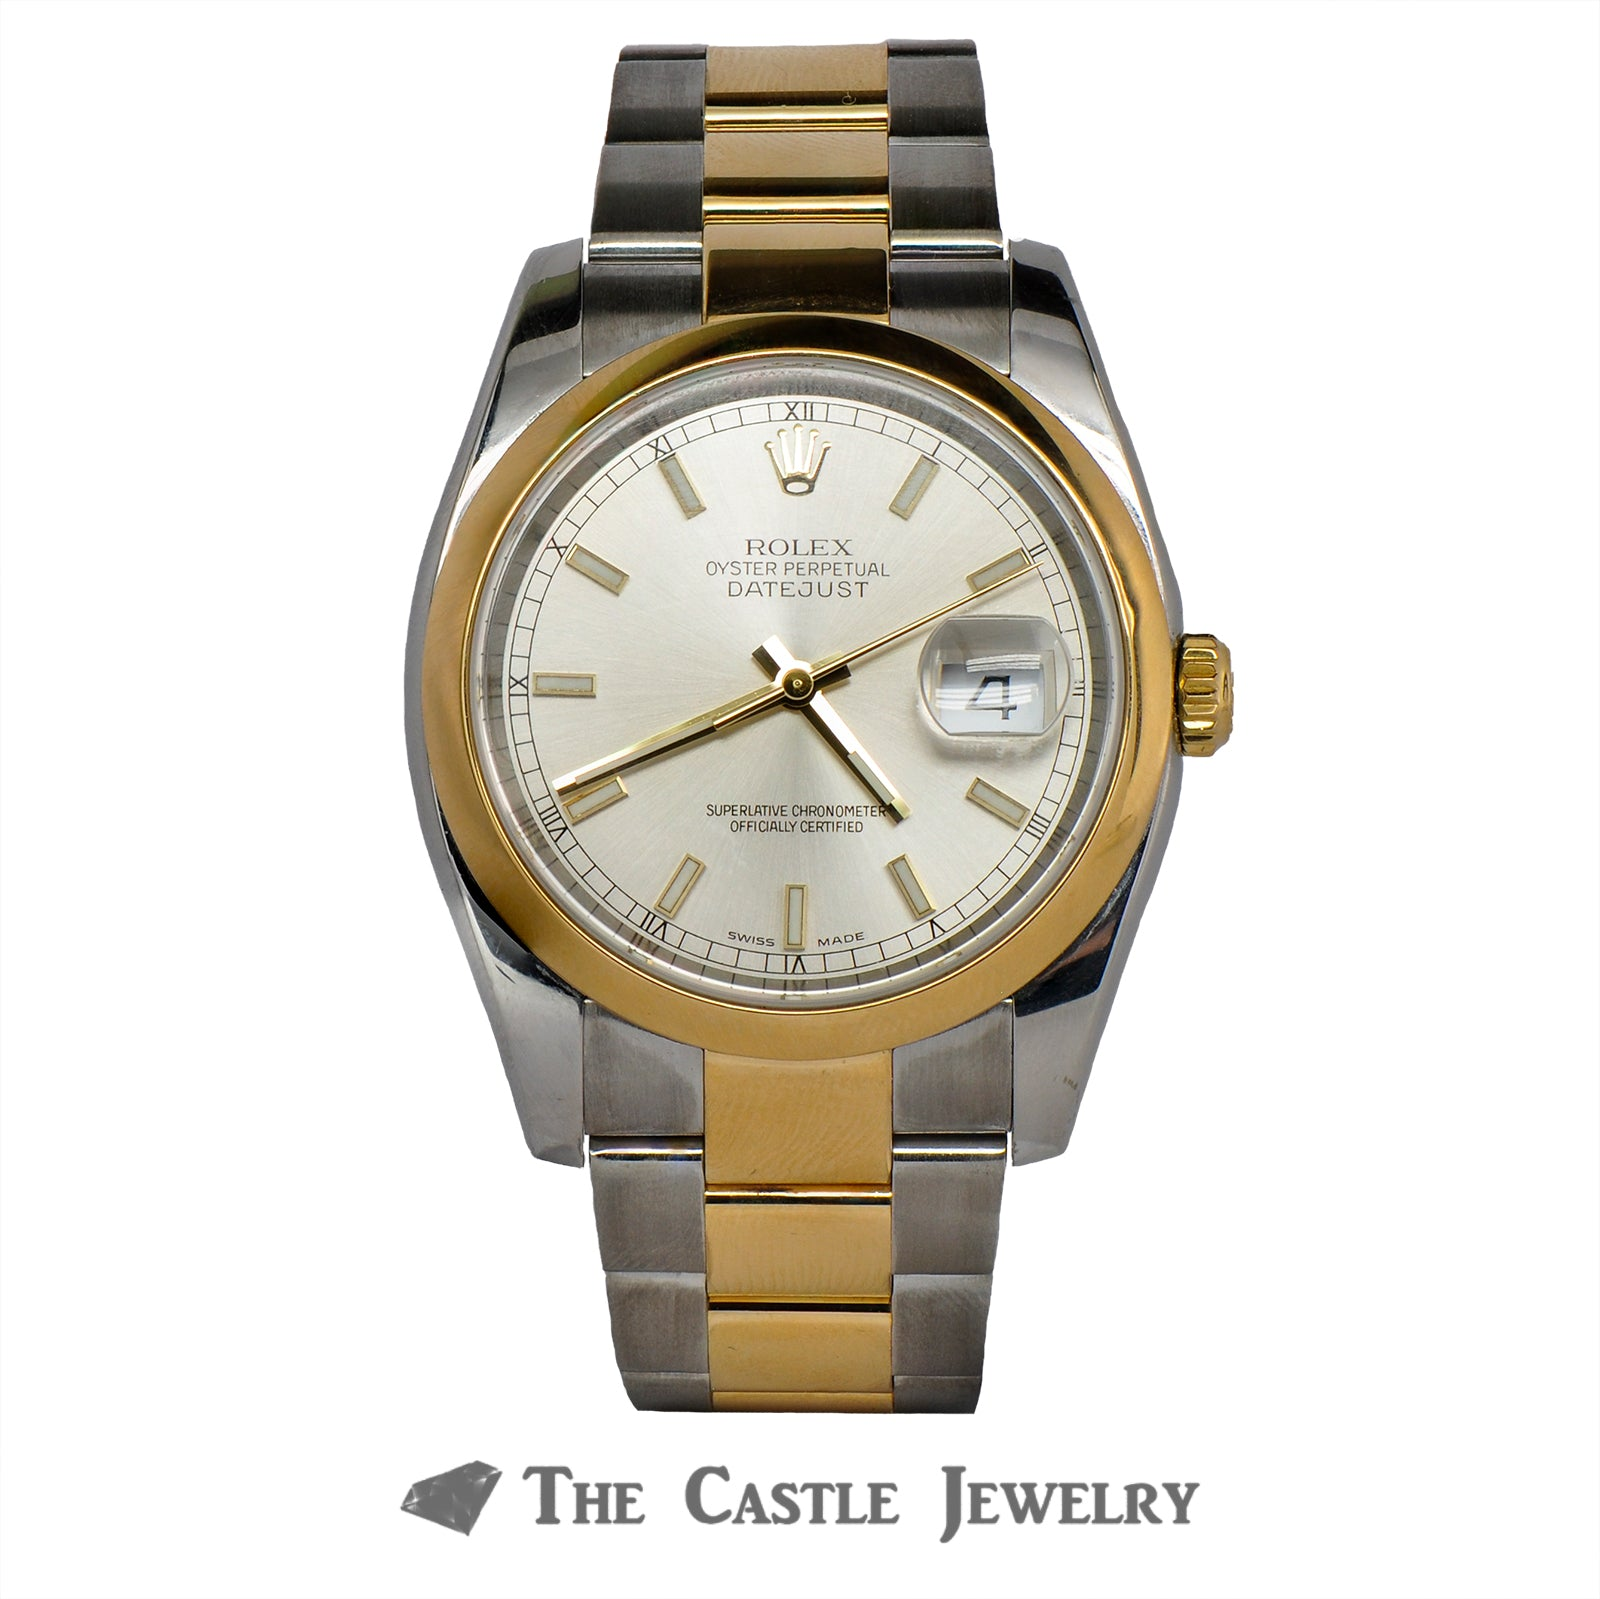 Rolex Datejust 116203 with Silver Dial 18K/Steel Oyster Bracelet